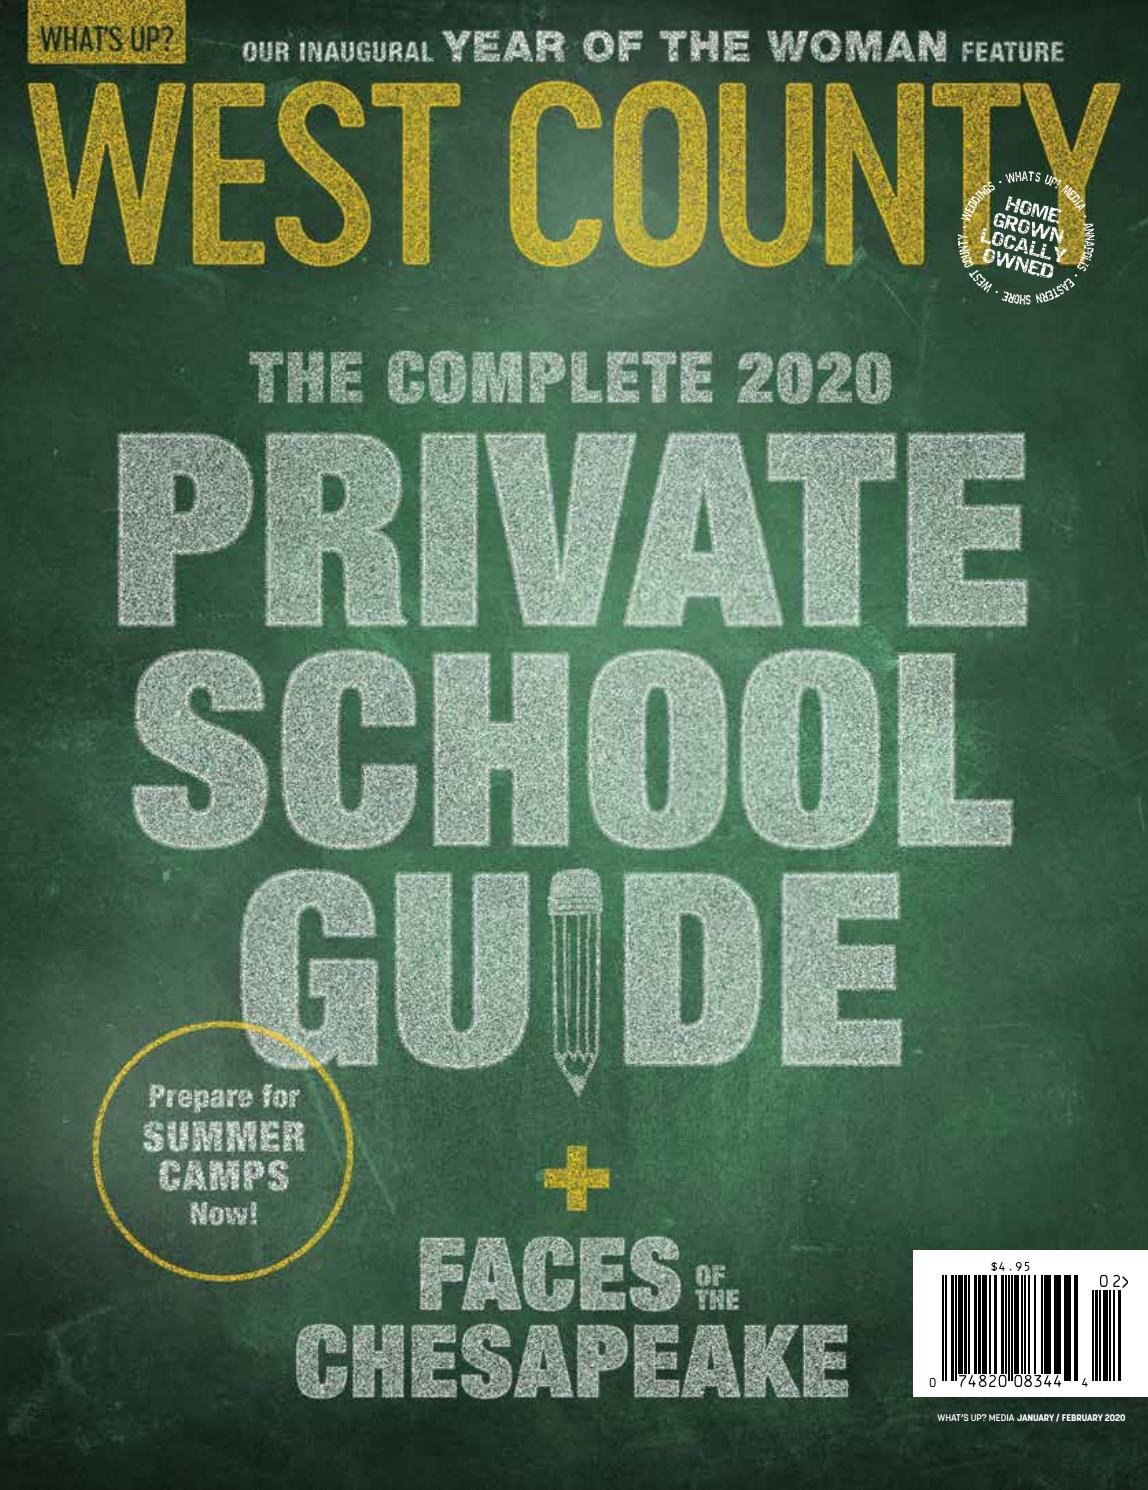 What S Up West County January 2020